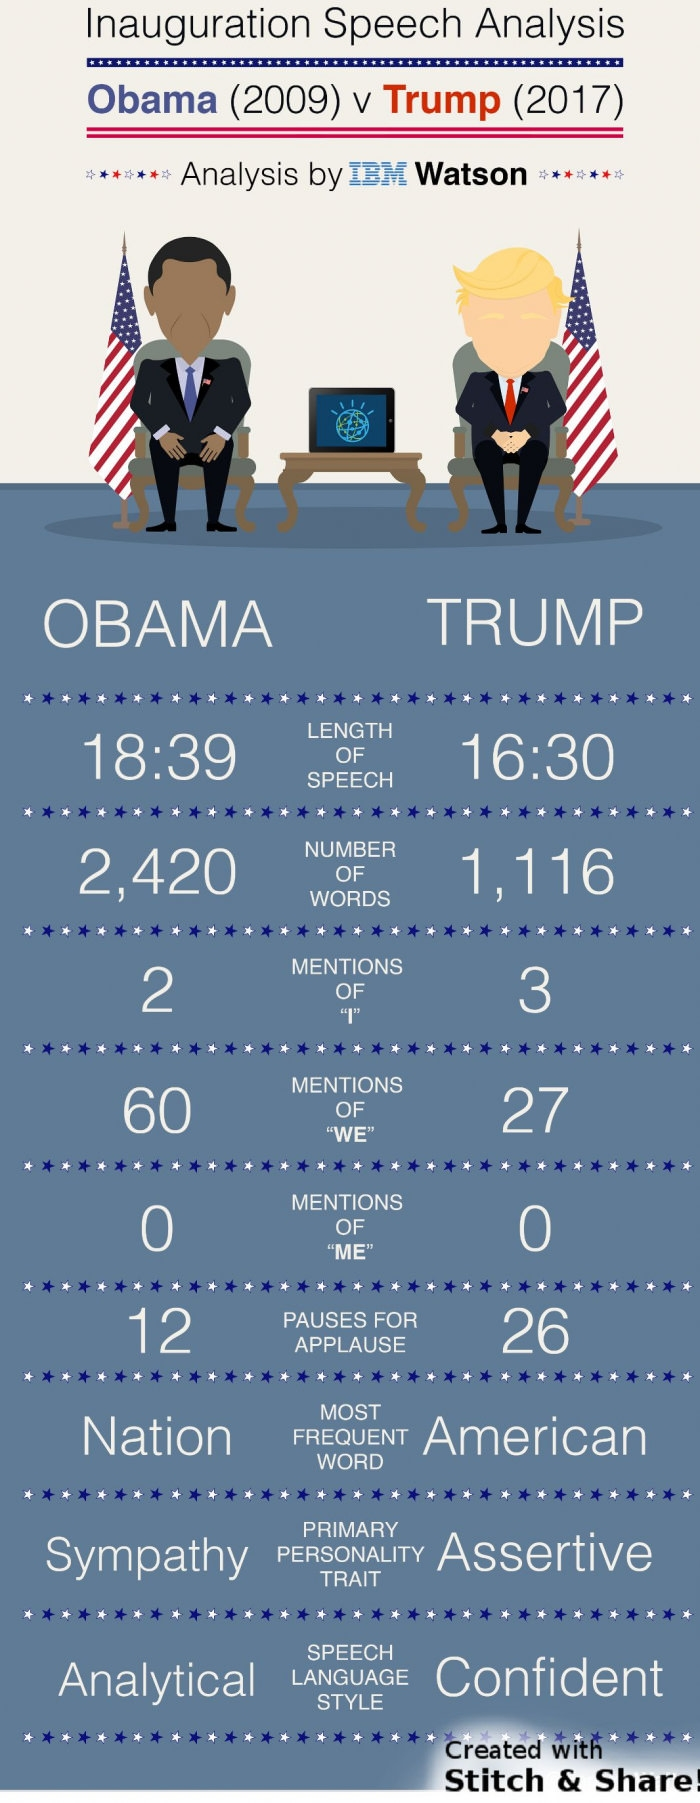 Trump's vs Obama's speech